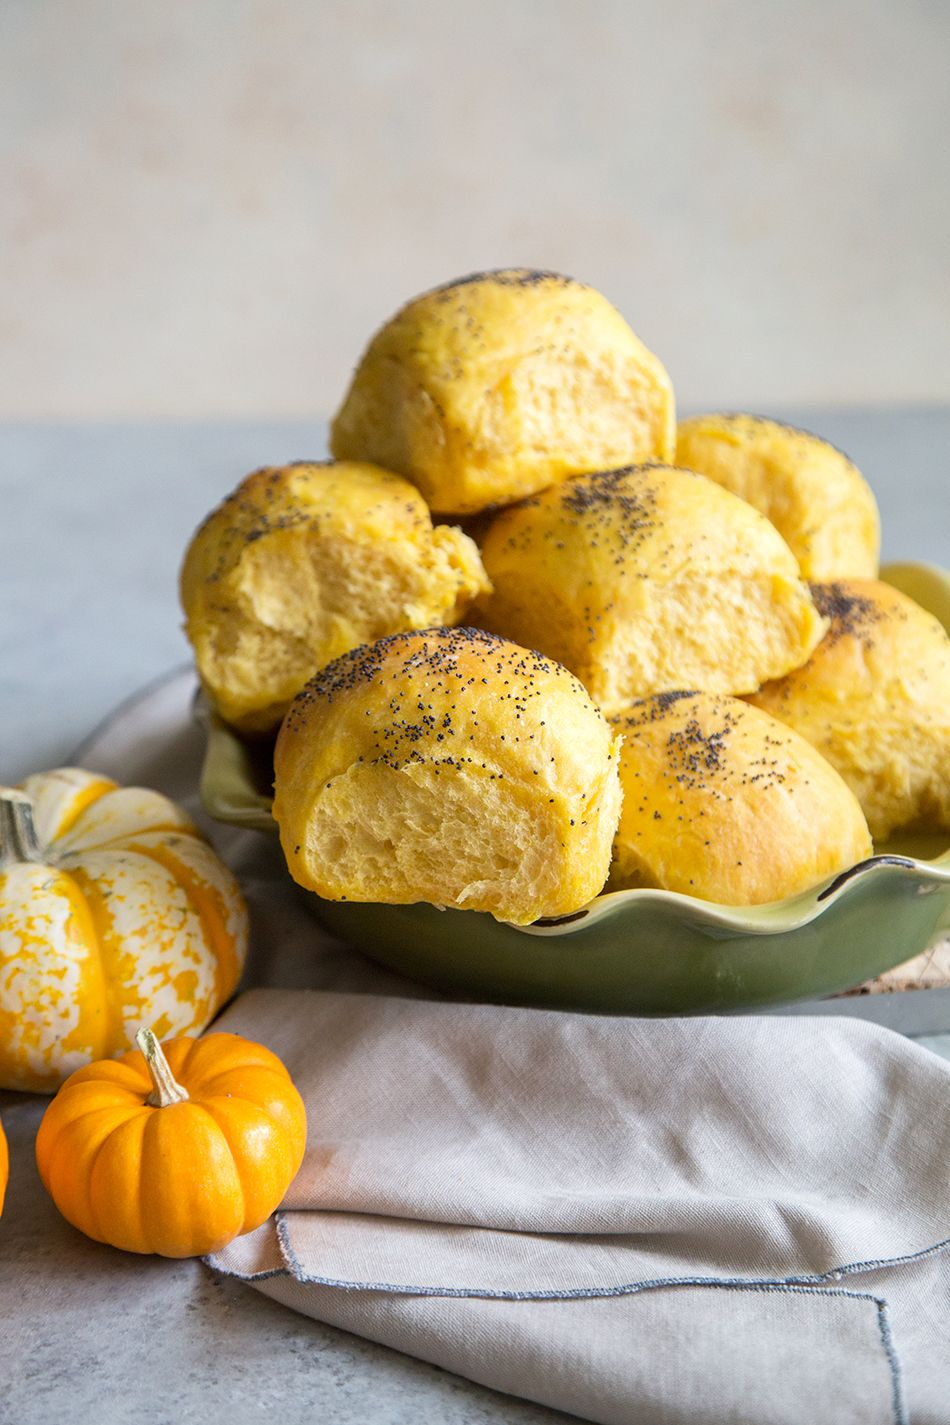 These super soft pumpkin bread rolls are the perfect accompaniment to any autumn meal! Made with pumpkin puree, these rolls are savory